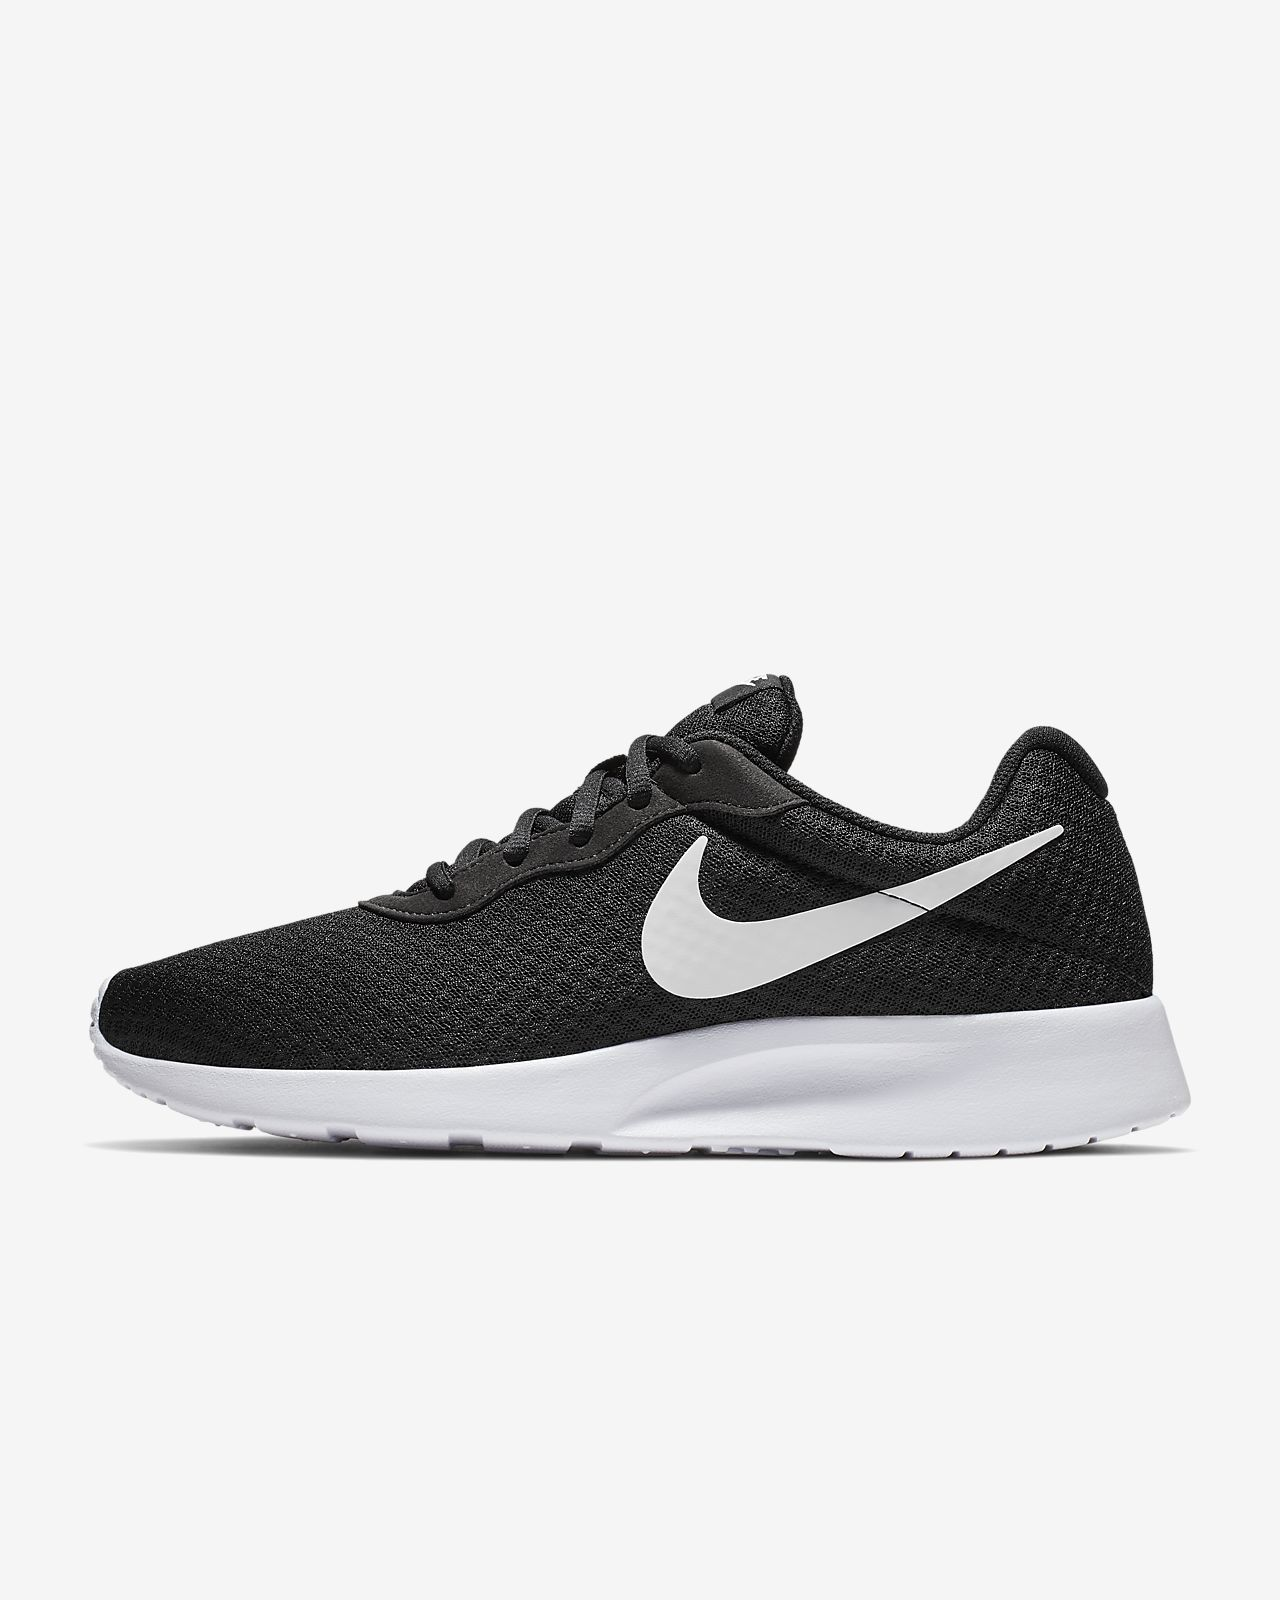 464292c6259e Low Resolution Nike Tanjun Men s Shoe Nike Tanjun Men s Shoe